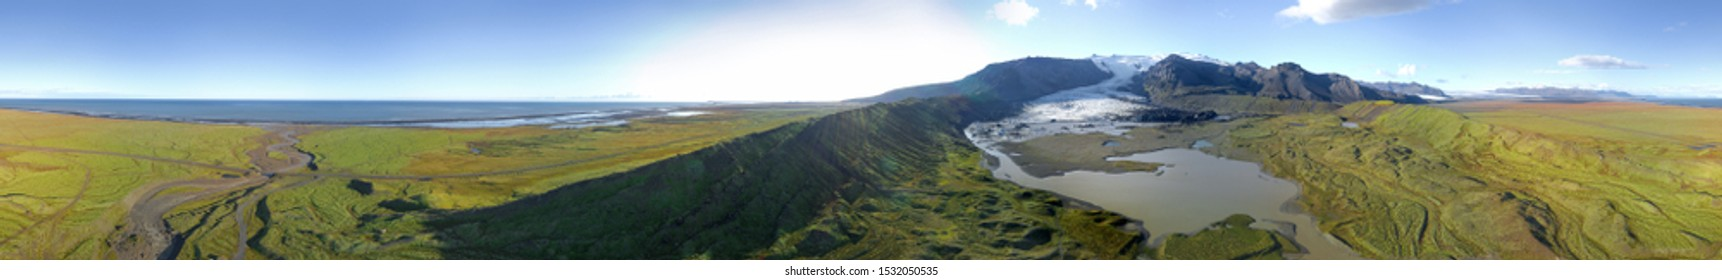 360 degrees Icelandic aerial landscape. 360 panorama of the Fjallsarlon glacier and the lagoon on a sunny day.